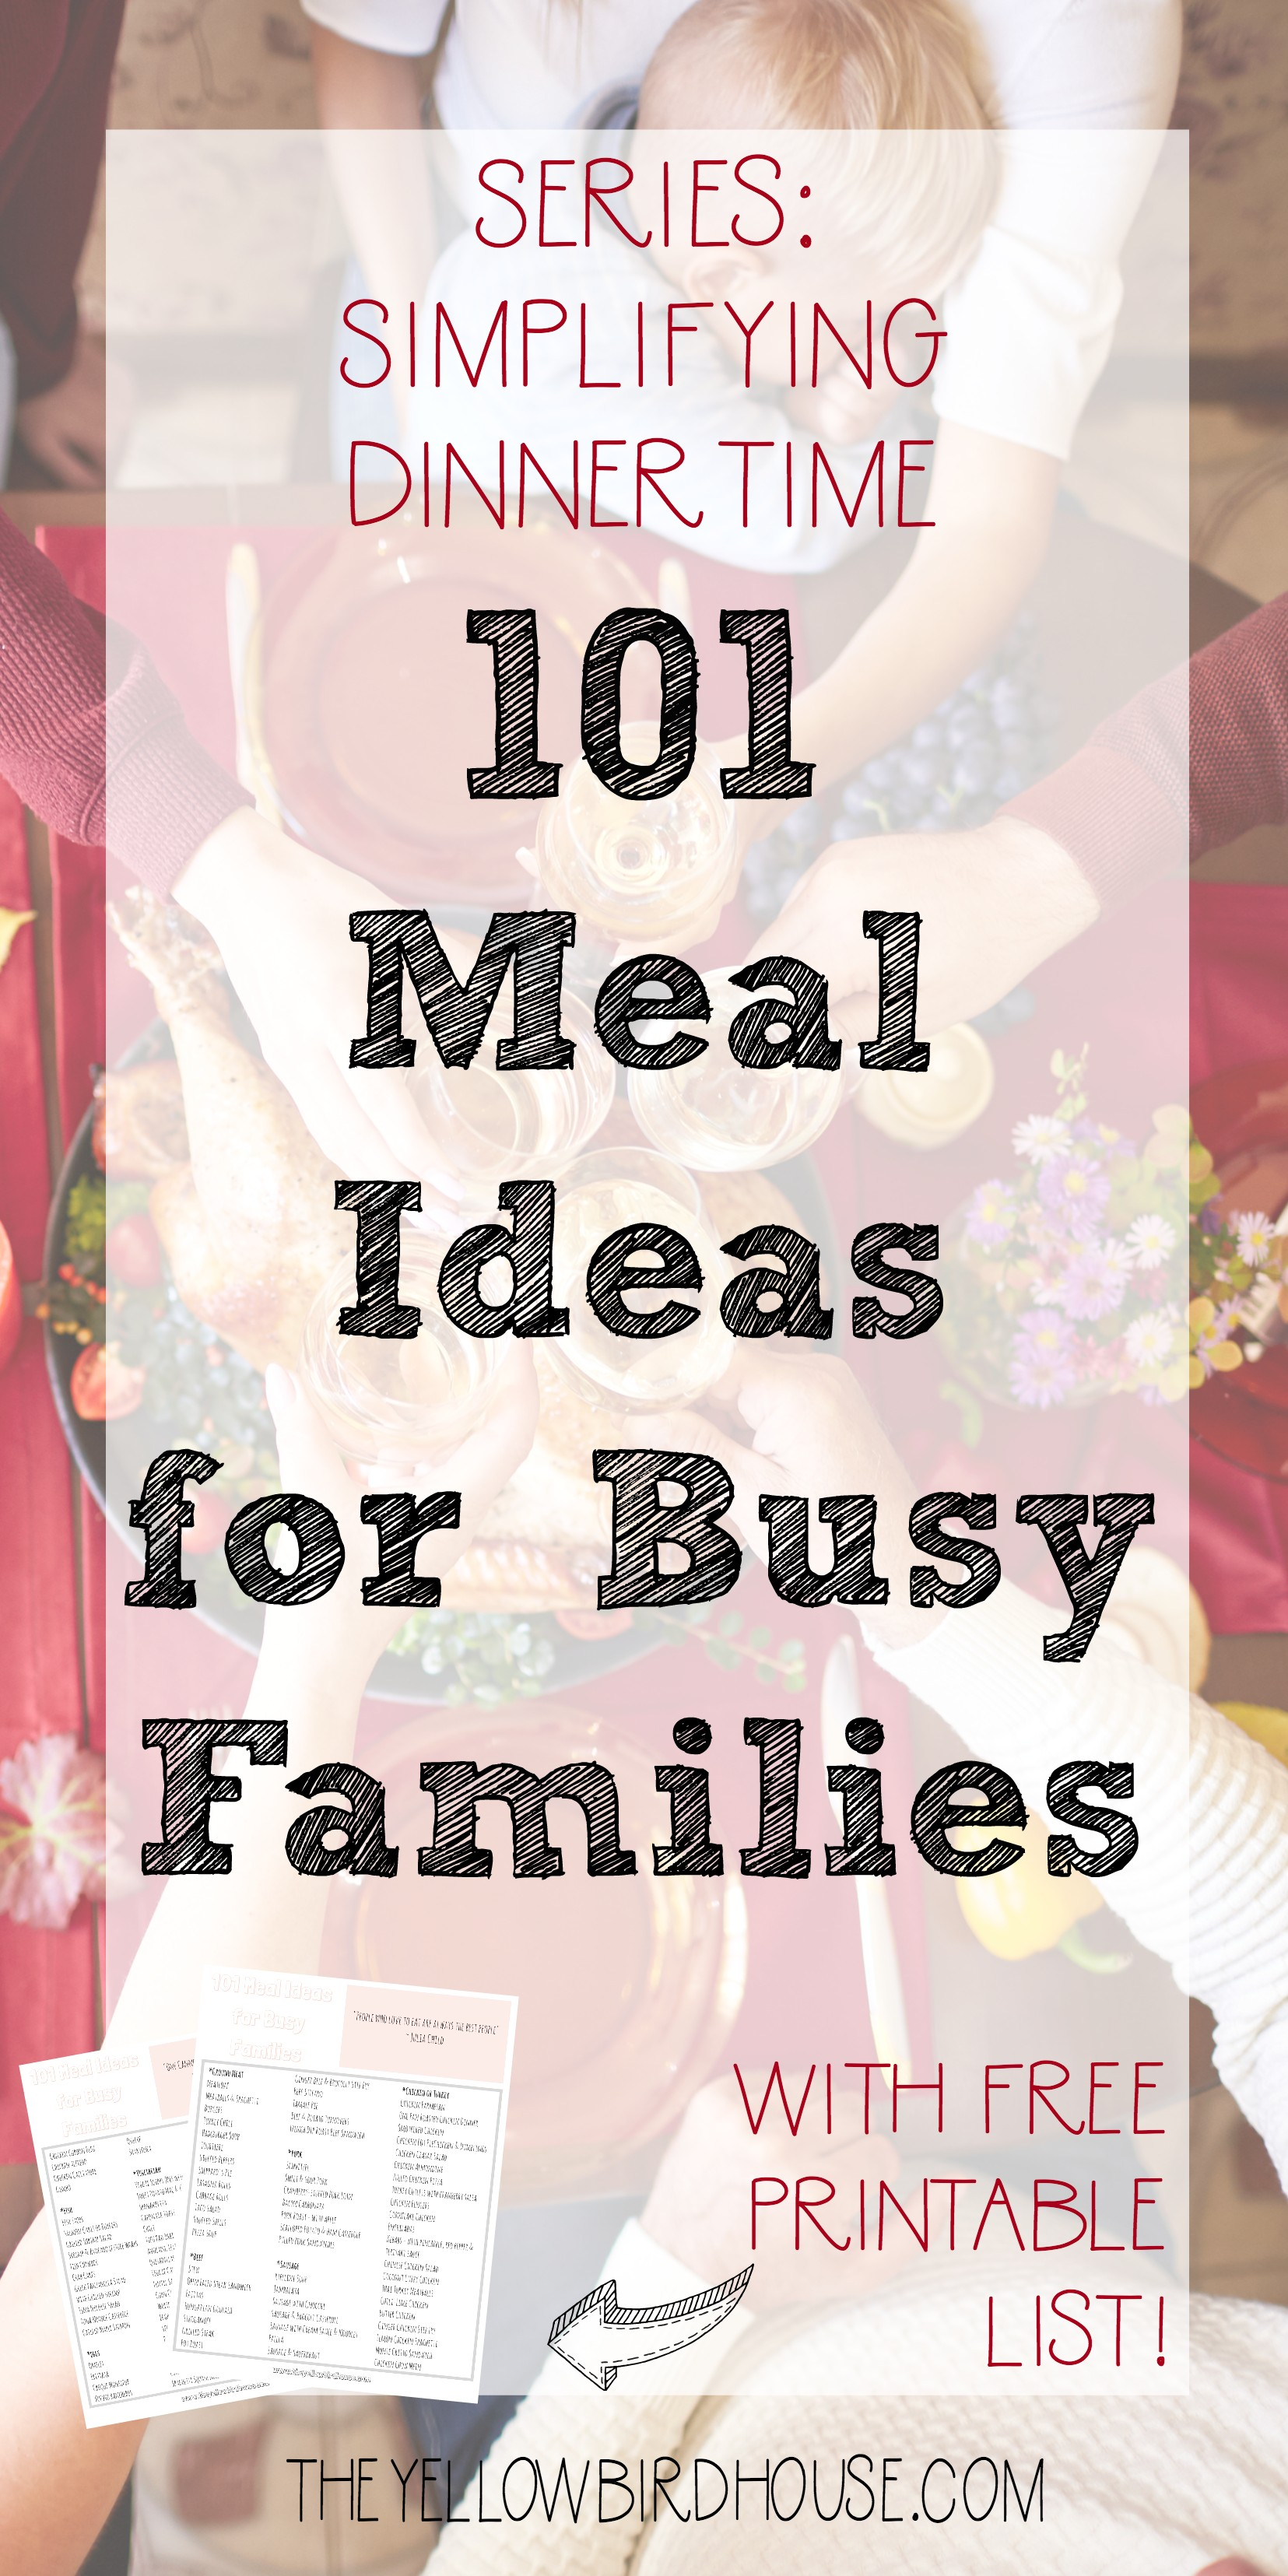 Do you struggle to come up with weeknight dinner ideas? Here is an epic list of 101 meal ideas for busy families, plus 18 bonus side dish ideas!